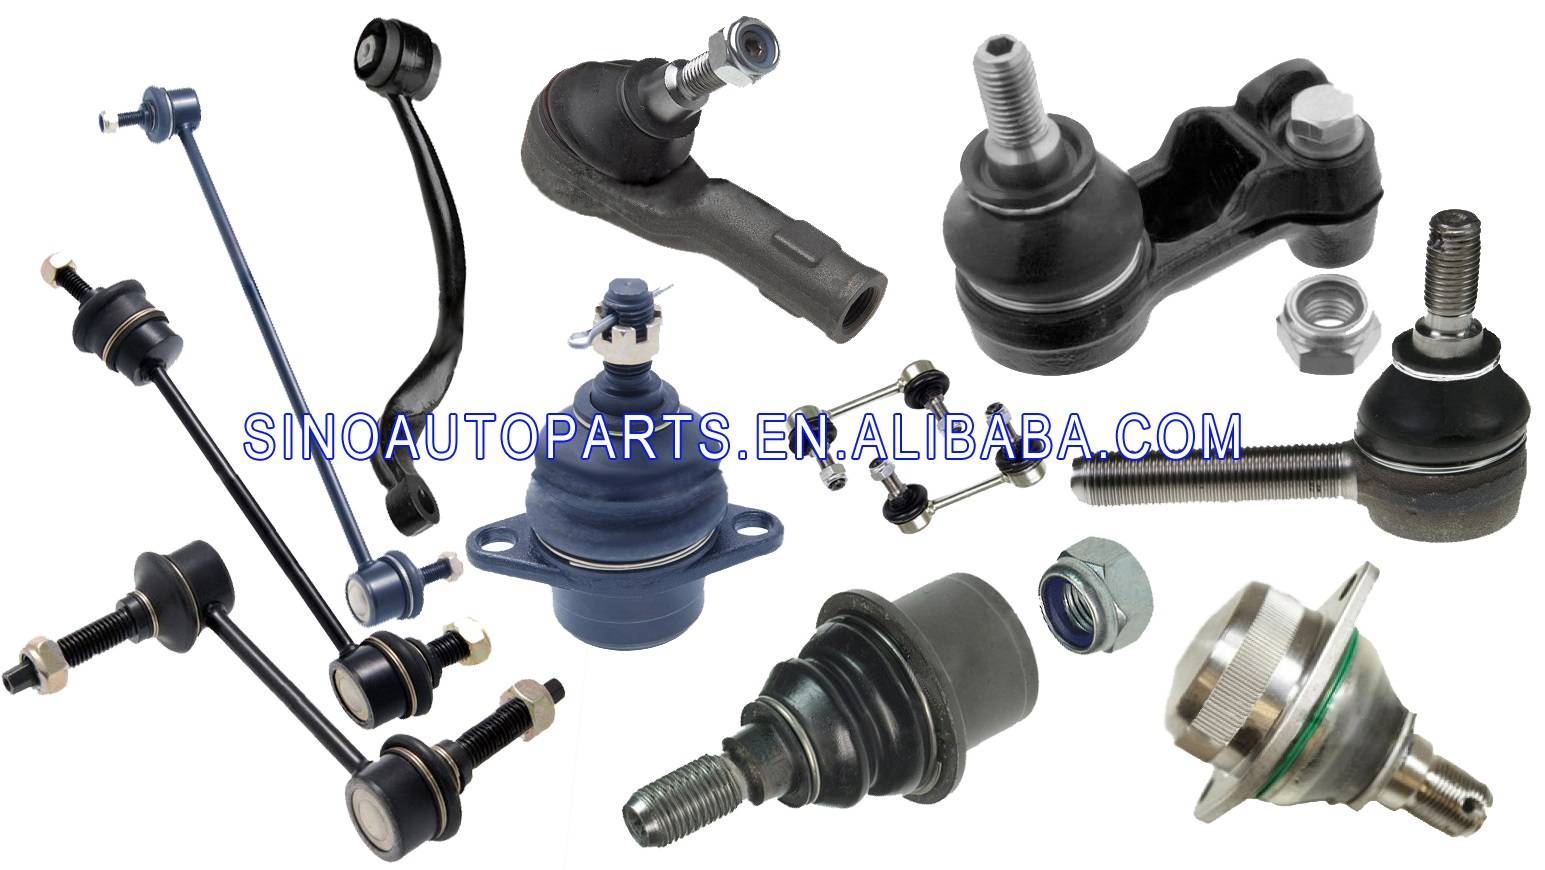 TIE ROD END BALL JOINT RHF 500130 RHF 500130 RGD 500140 RBK 500220 RHF 500100 FOR LAND ROVER